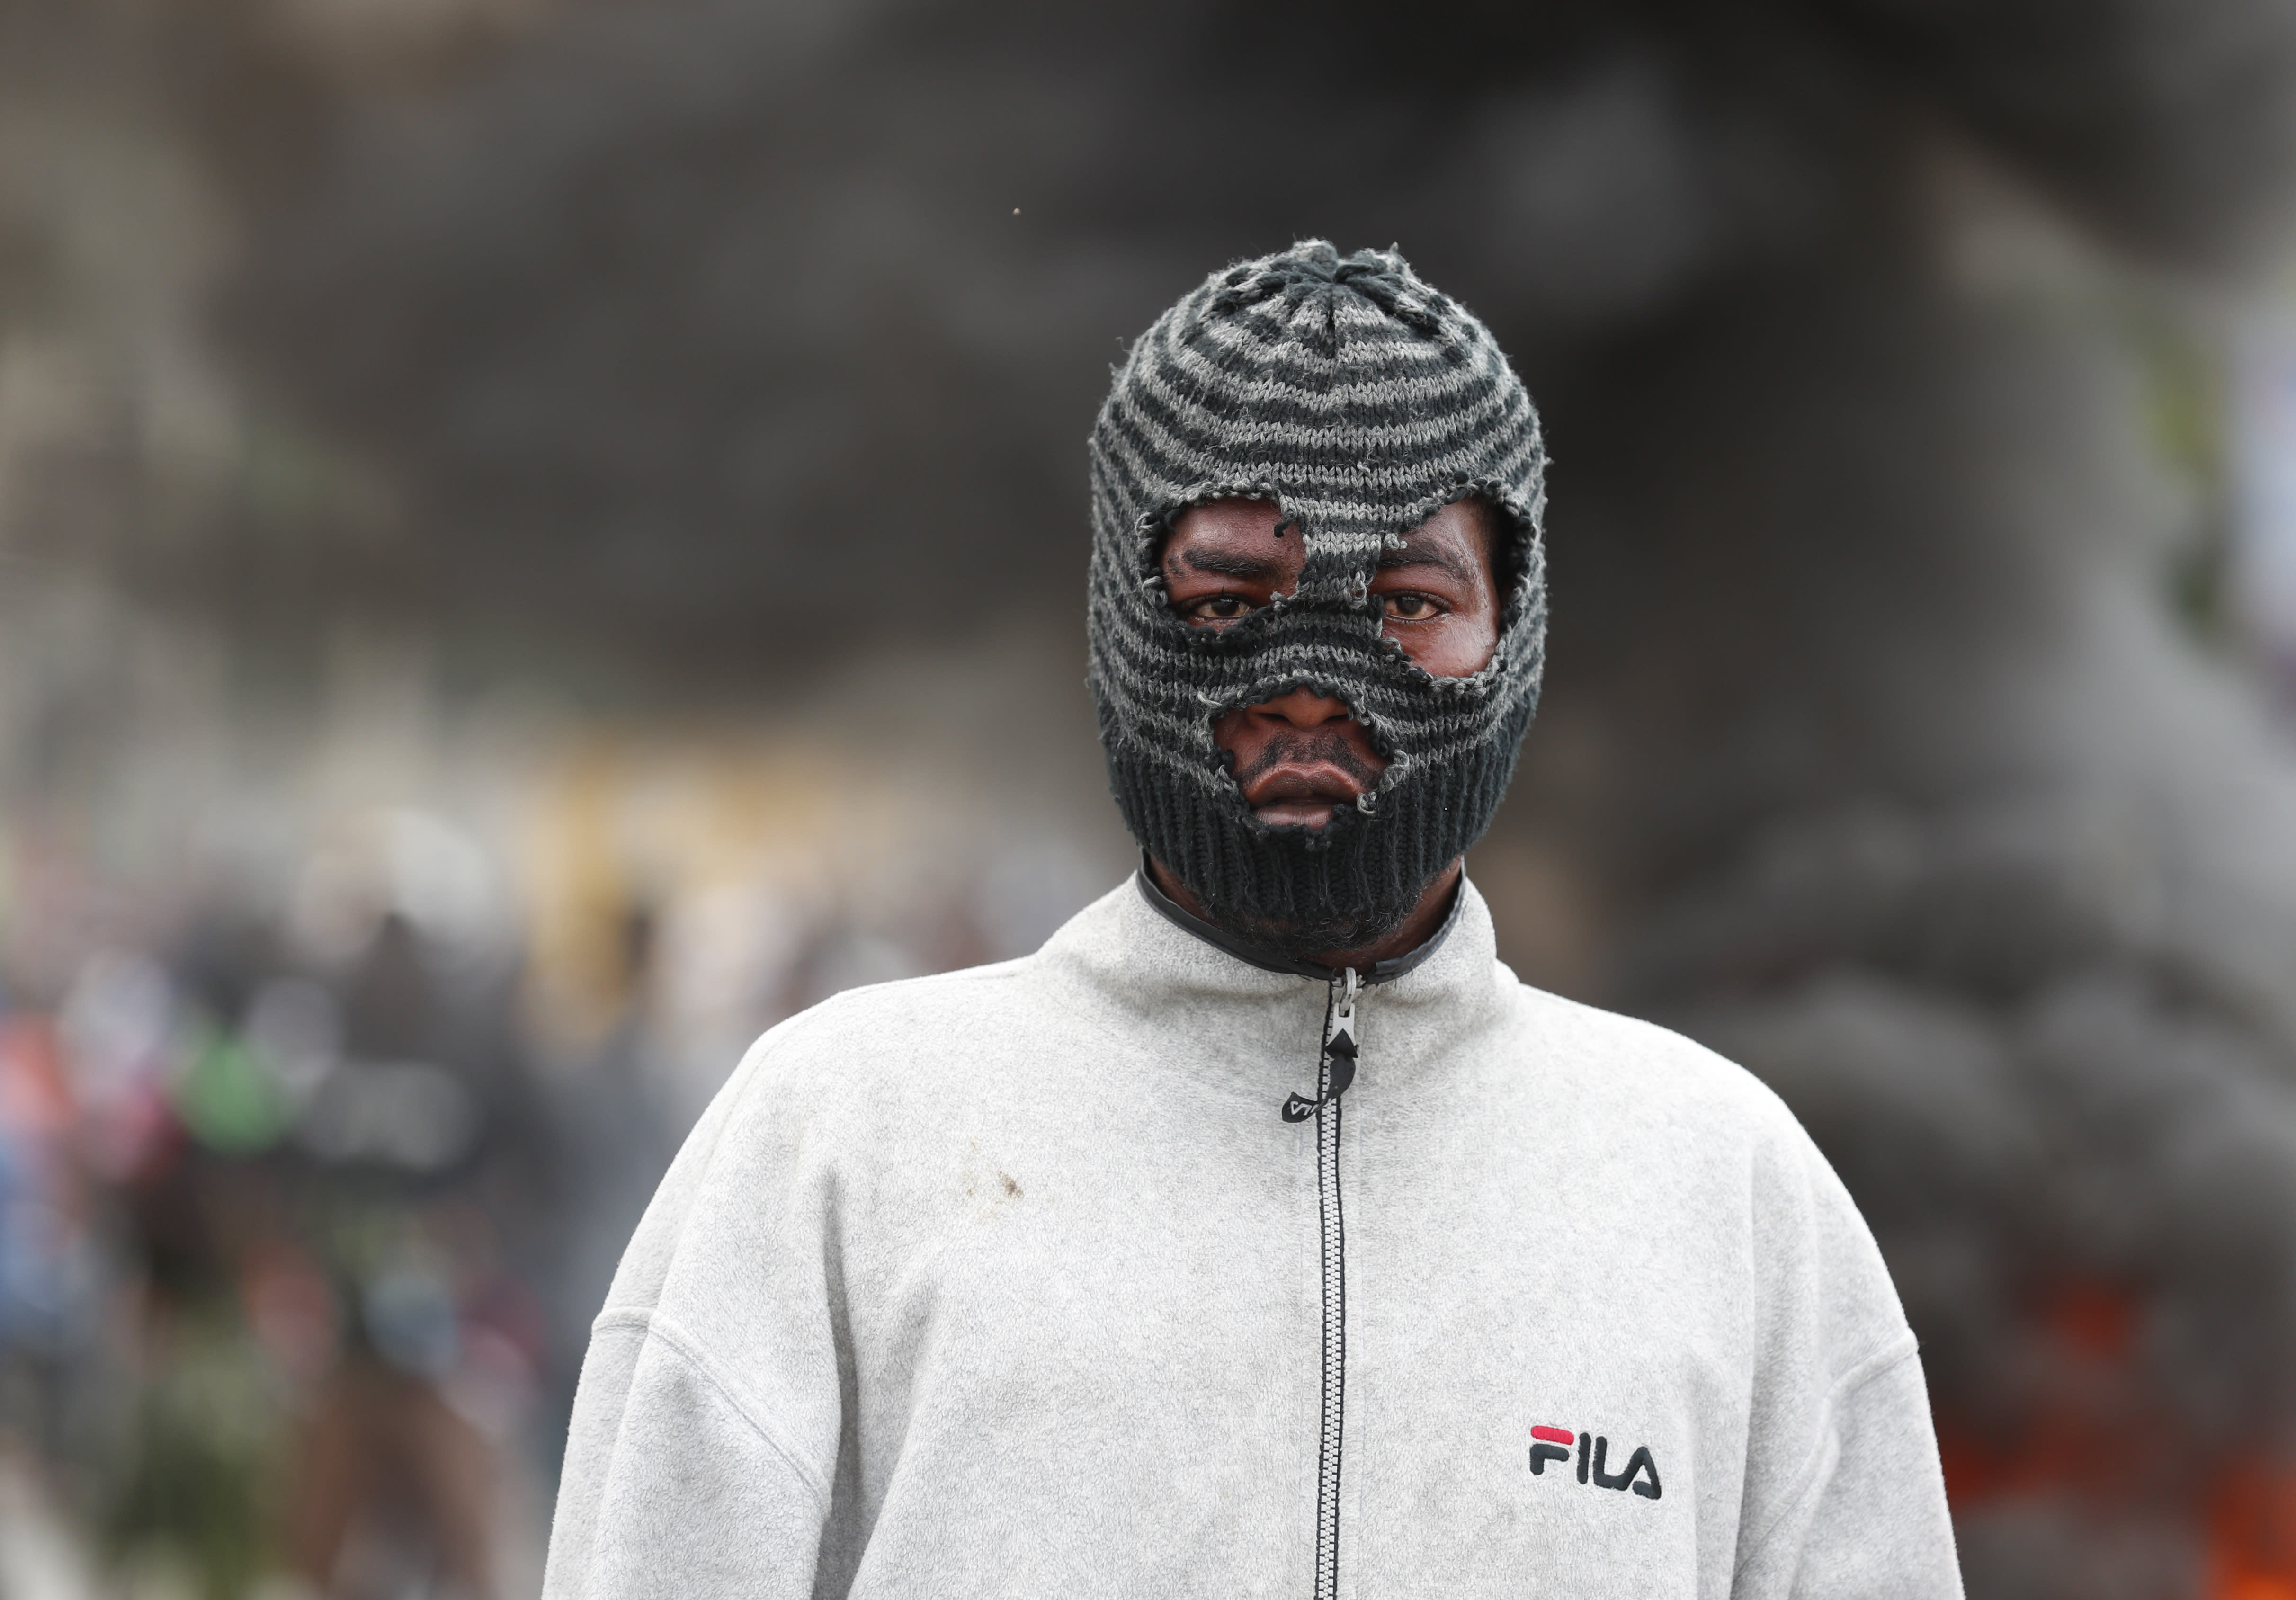 A masked demonstrator joins a protest calling for the resignation of President Jovenel Moise, in Port-au-Prince, Haiti, Friday, Oct. 4, 2019. After a two-day respite from the recent protests that have wracked Haiti's capital, opposition leaders urged citizens angry over corruption, gas shortages, and inflation to join them for a massive protest march to the local headquarters of the United Nations.(AP Photo/Rebecca Blackwell)